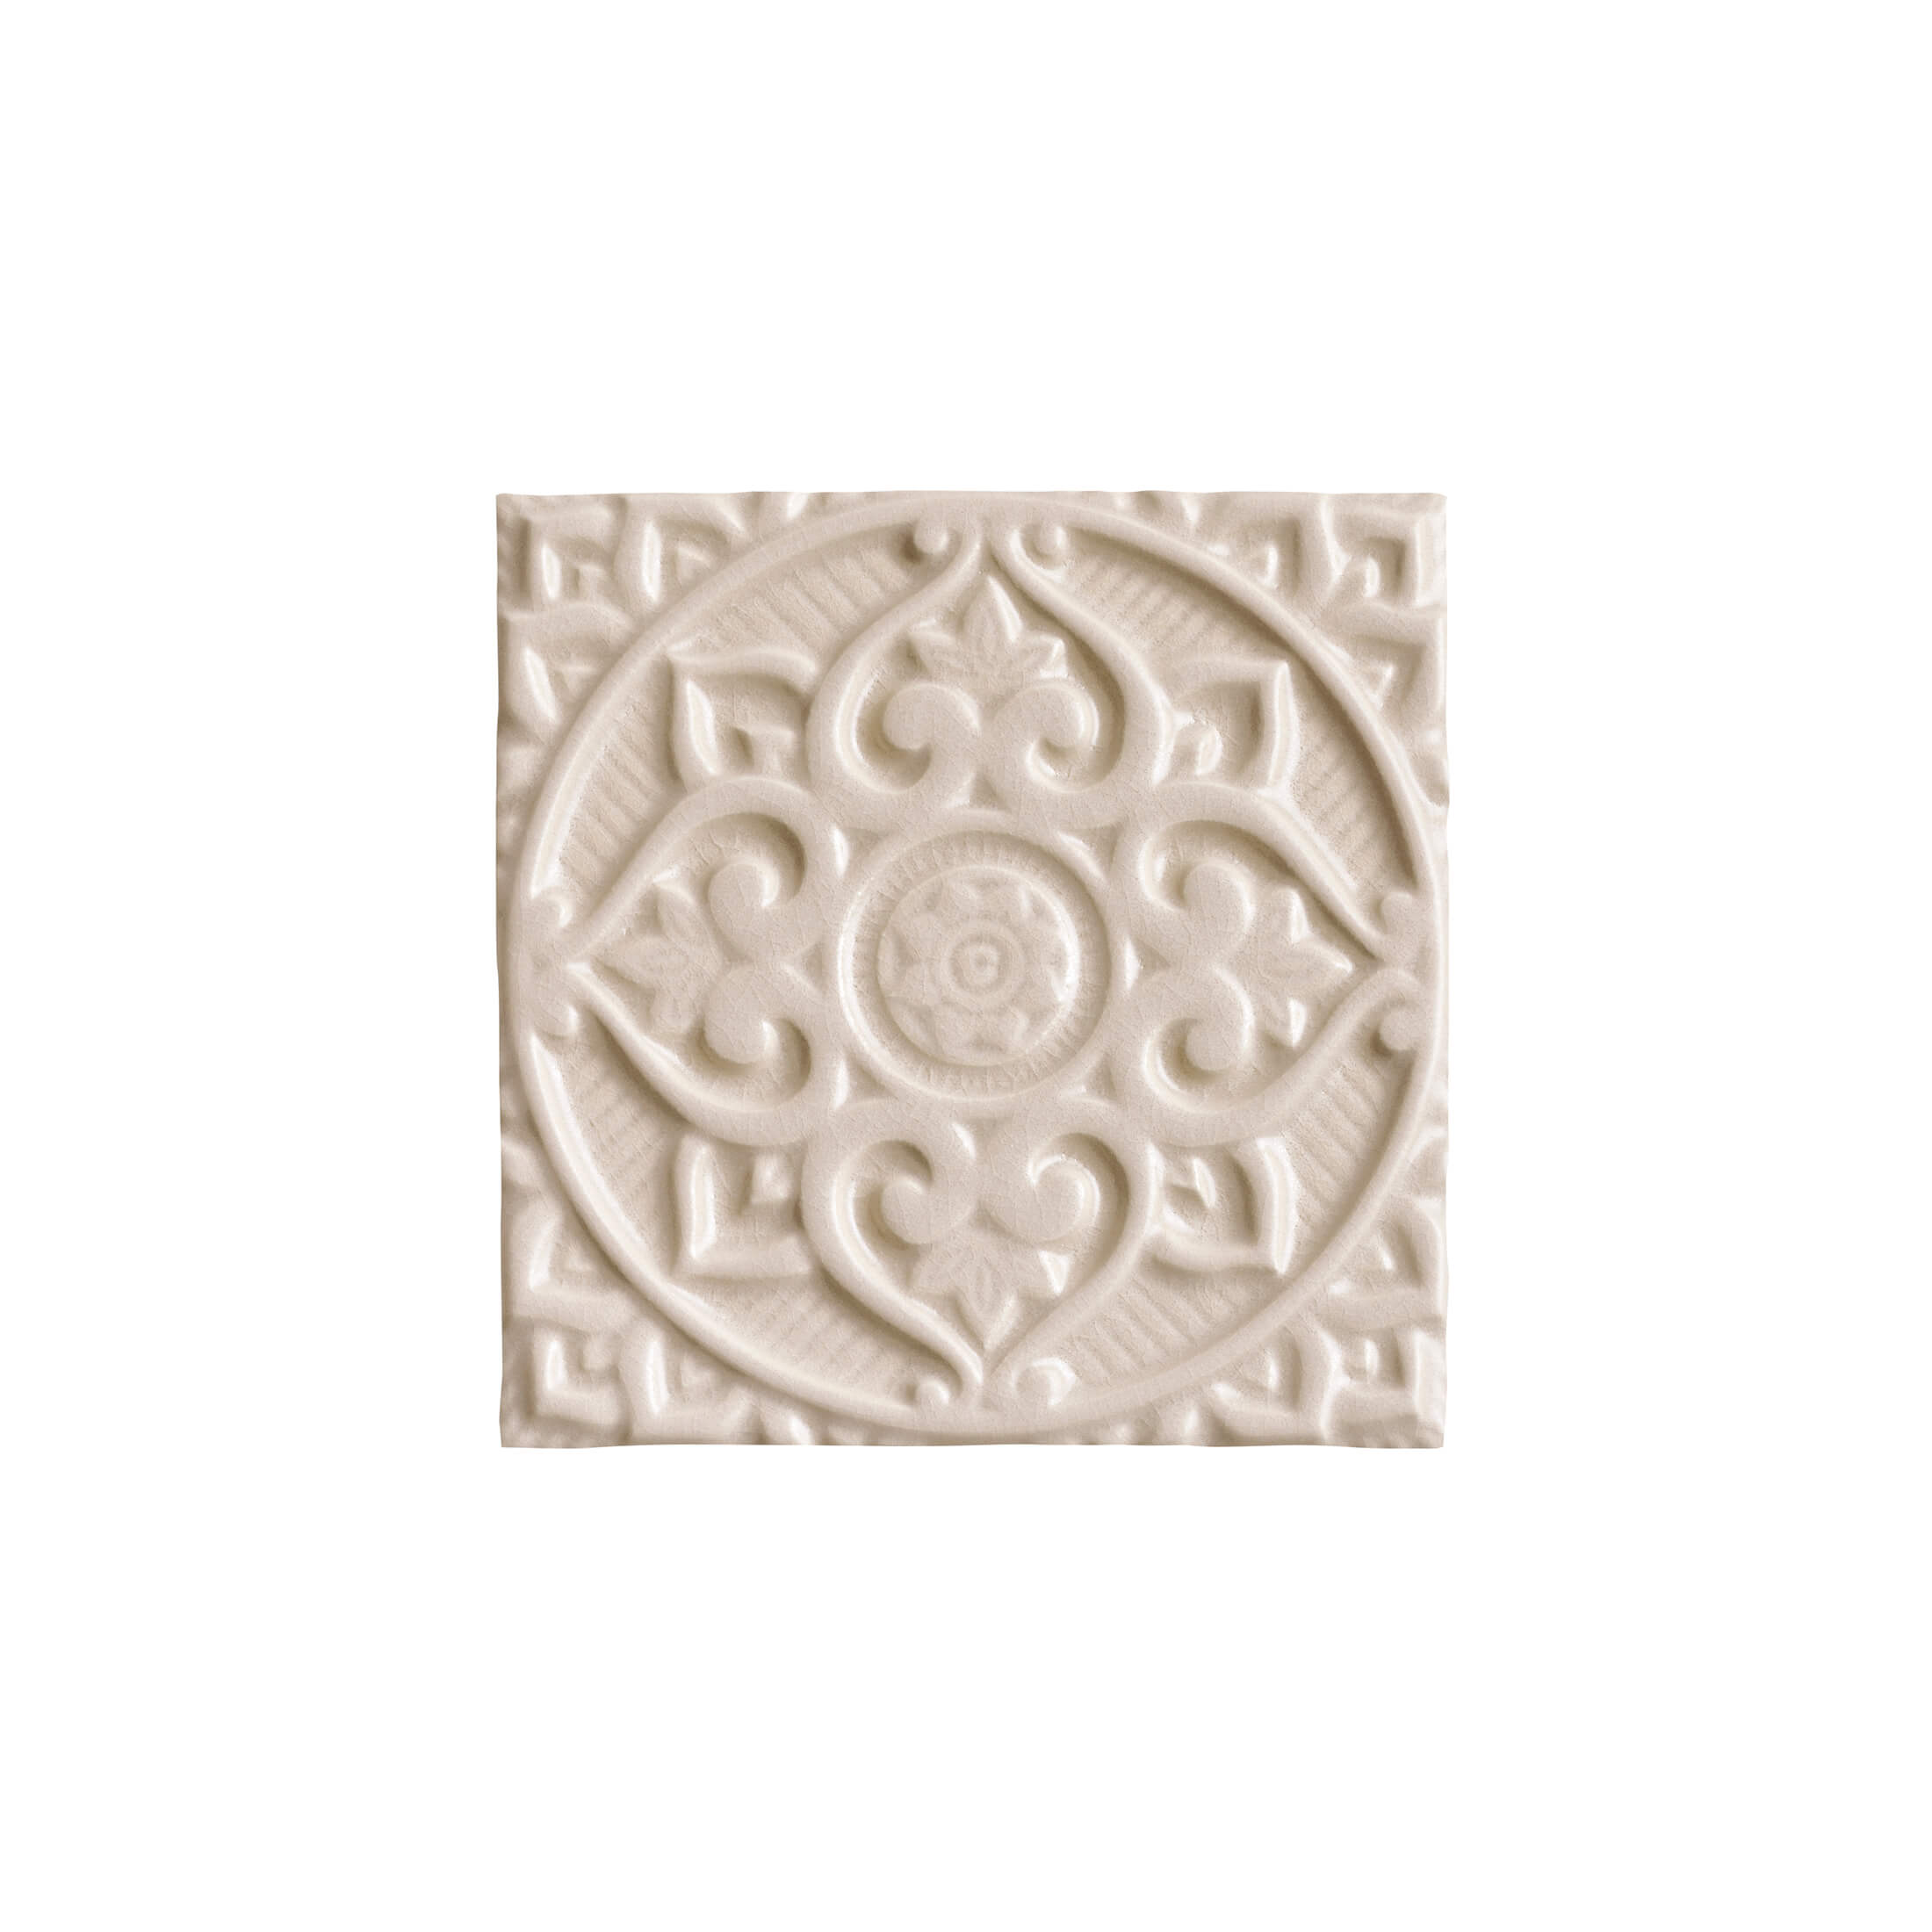 ADEH4008 - RELIEVE MANDALA ENERGY - 15 cm X 15 cm